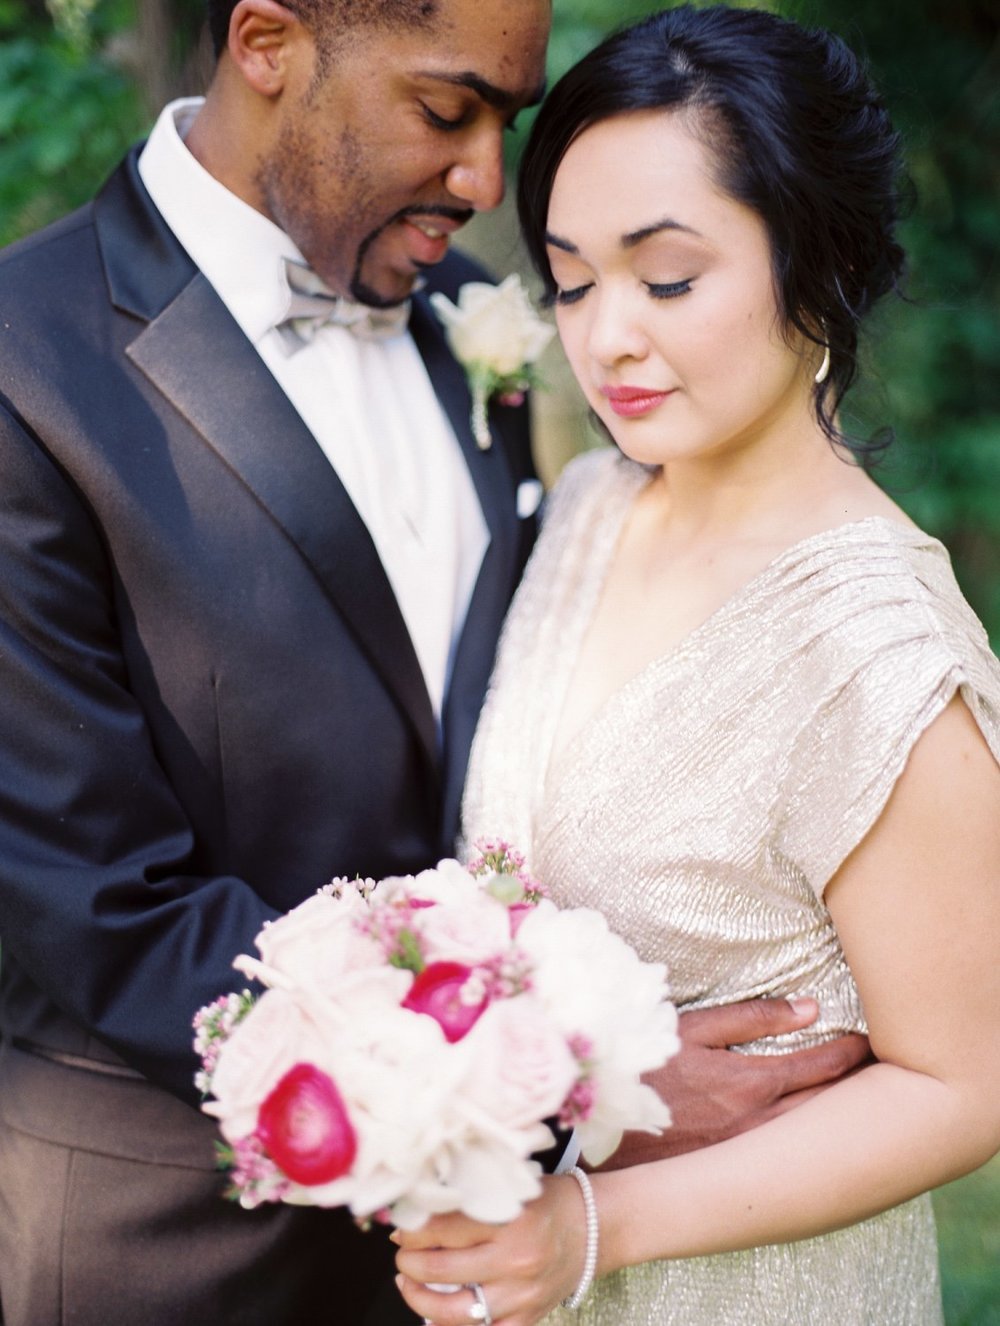 ijams nature center wedding - knoxville wedding photographer - juicebeats photography